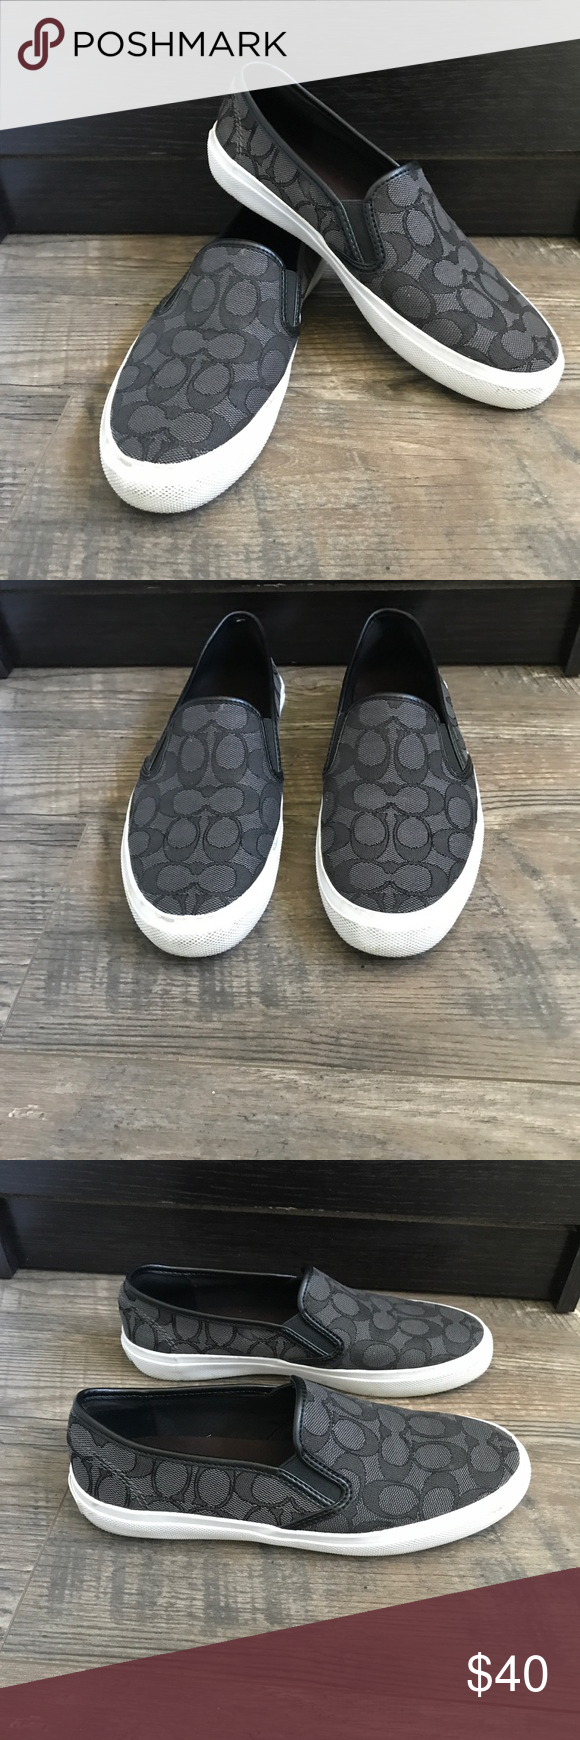 a325358663 ... low price coach signature cameron slip on sneaker canvas very good  condition coach shoes sneakers 27155